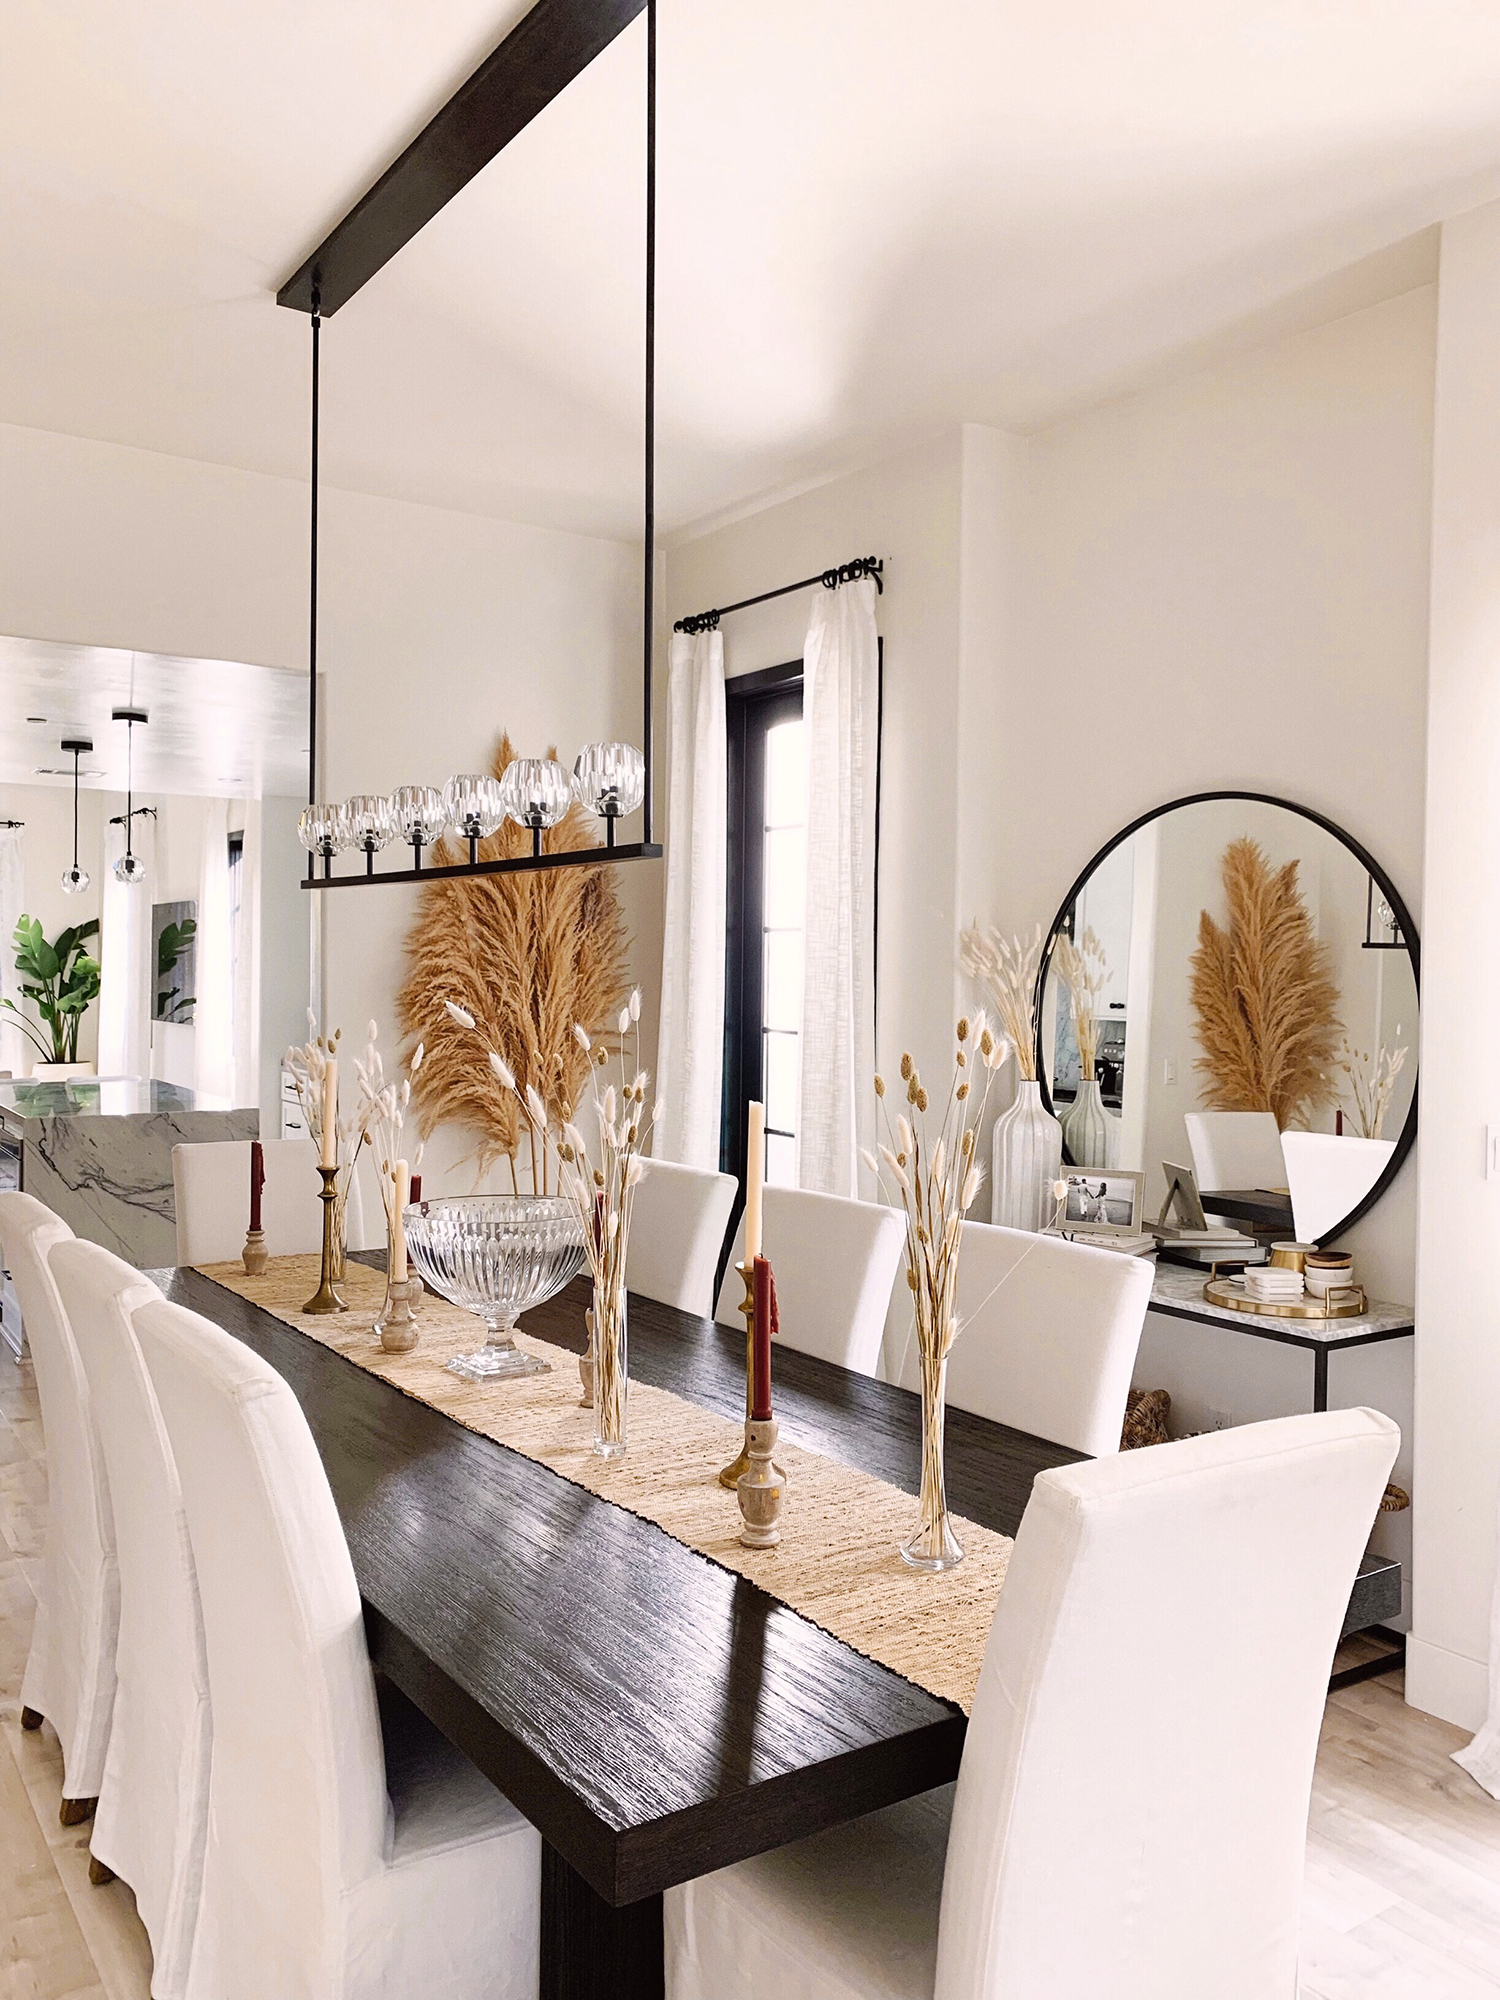 where to buy pampas grass